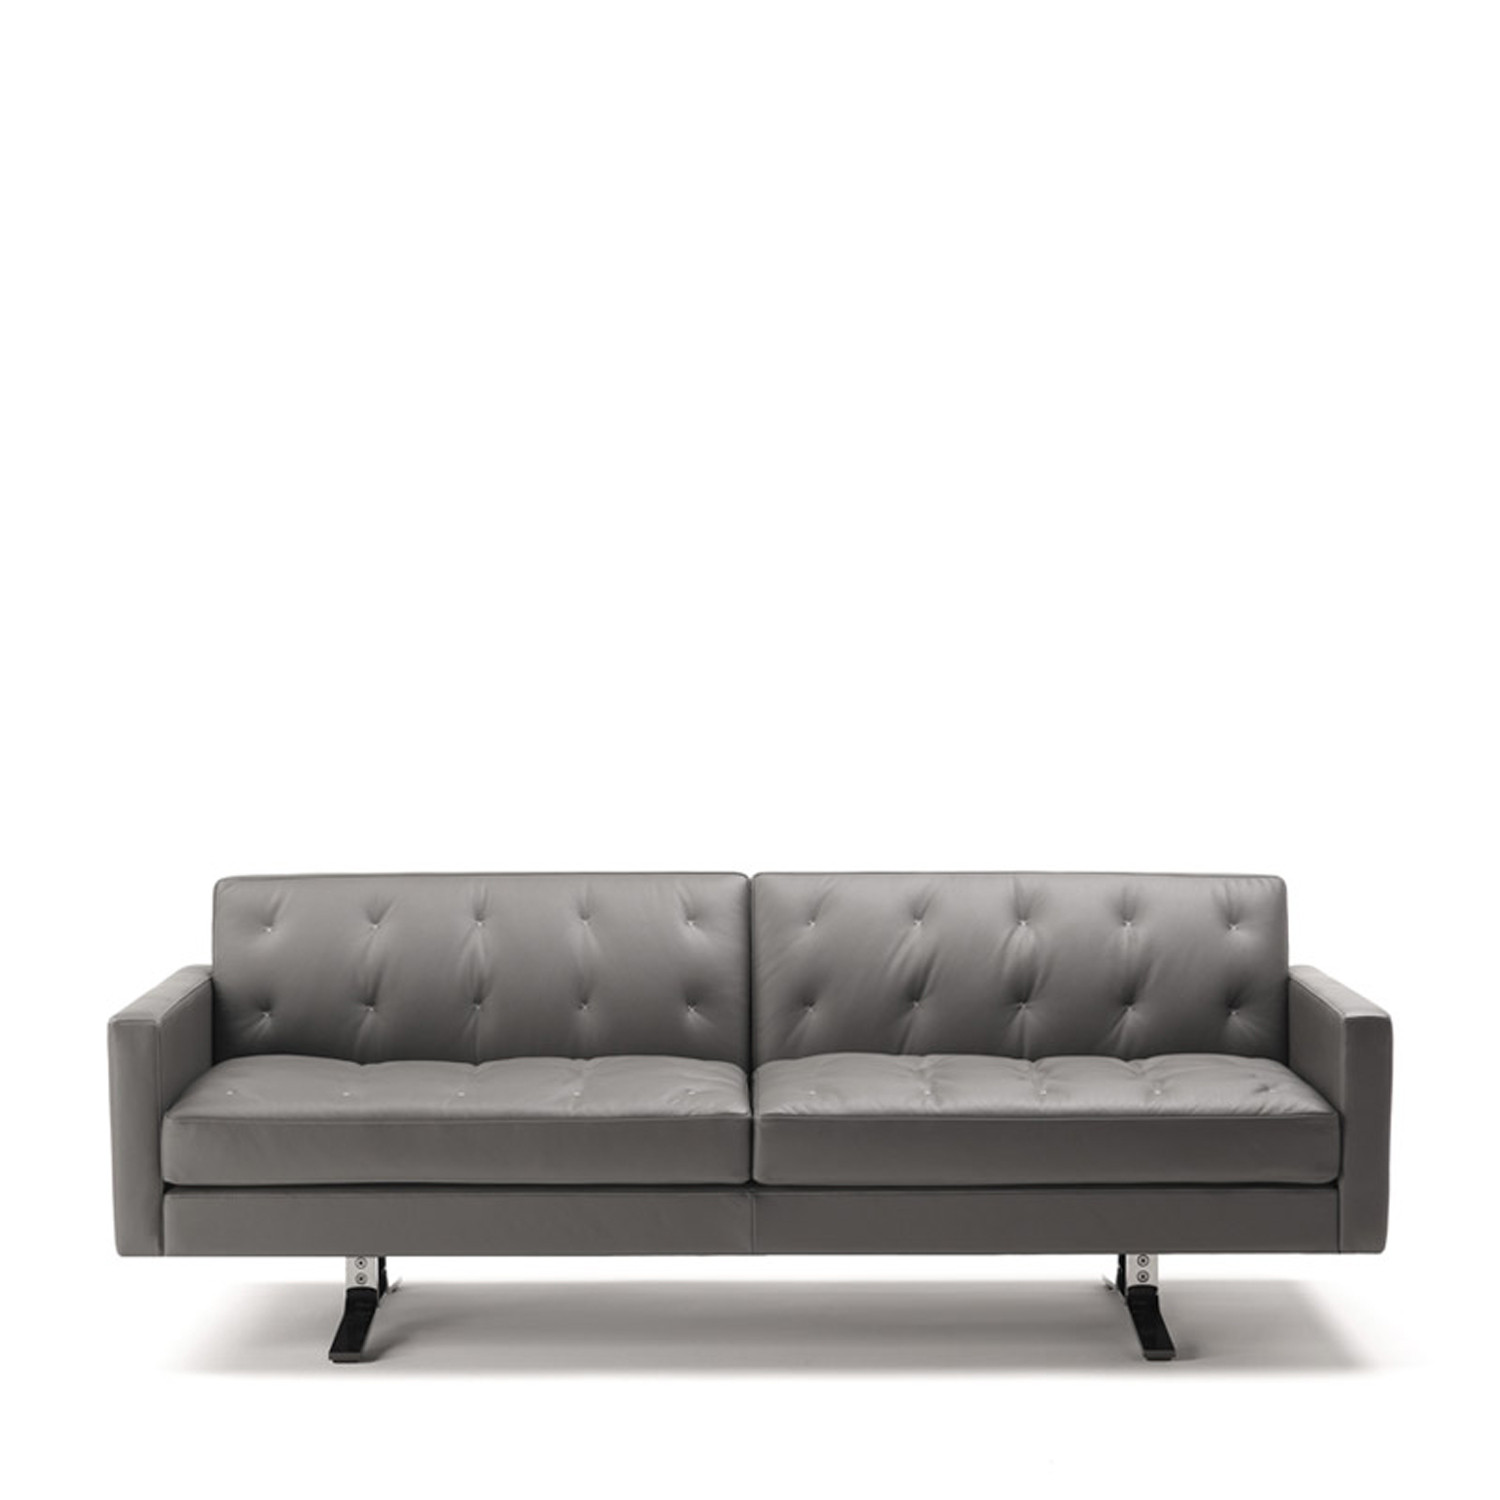 Kennedee Jr. Sofa